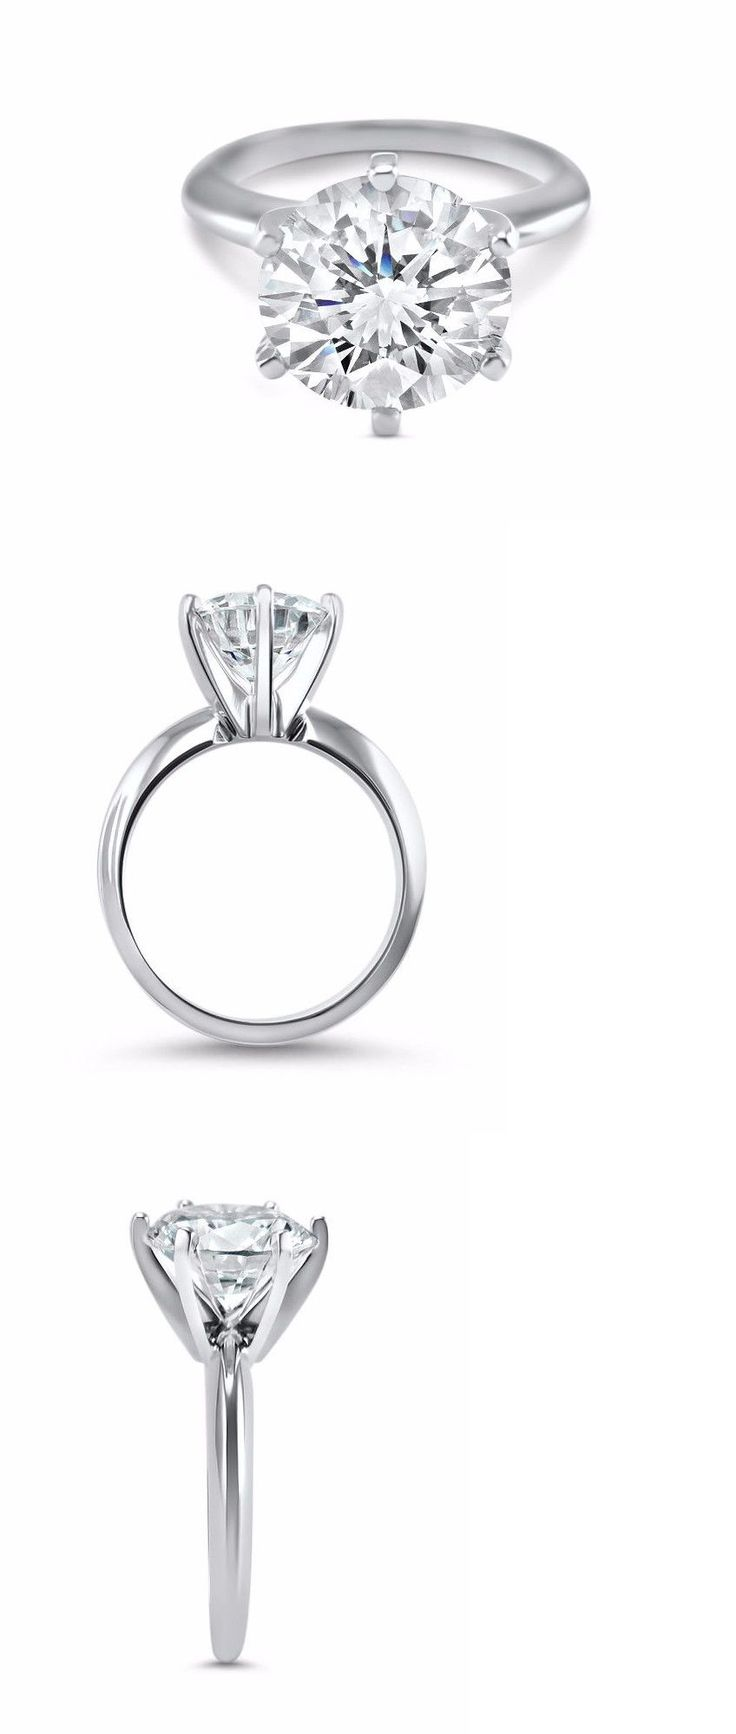 CZ Moissanite and Simulated 92868: 14K White Gold 3 Carat White Round Cz Engagement Ring 6 Prong 9 Mm Solitaire -> BUY IT NOW ONLY: $359.0 on eBay!